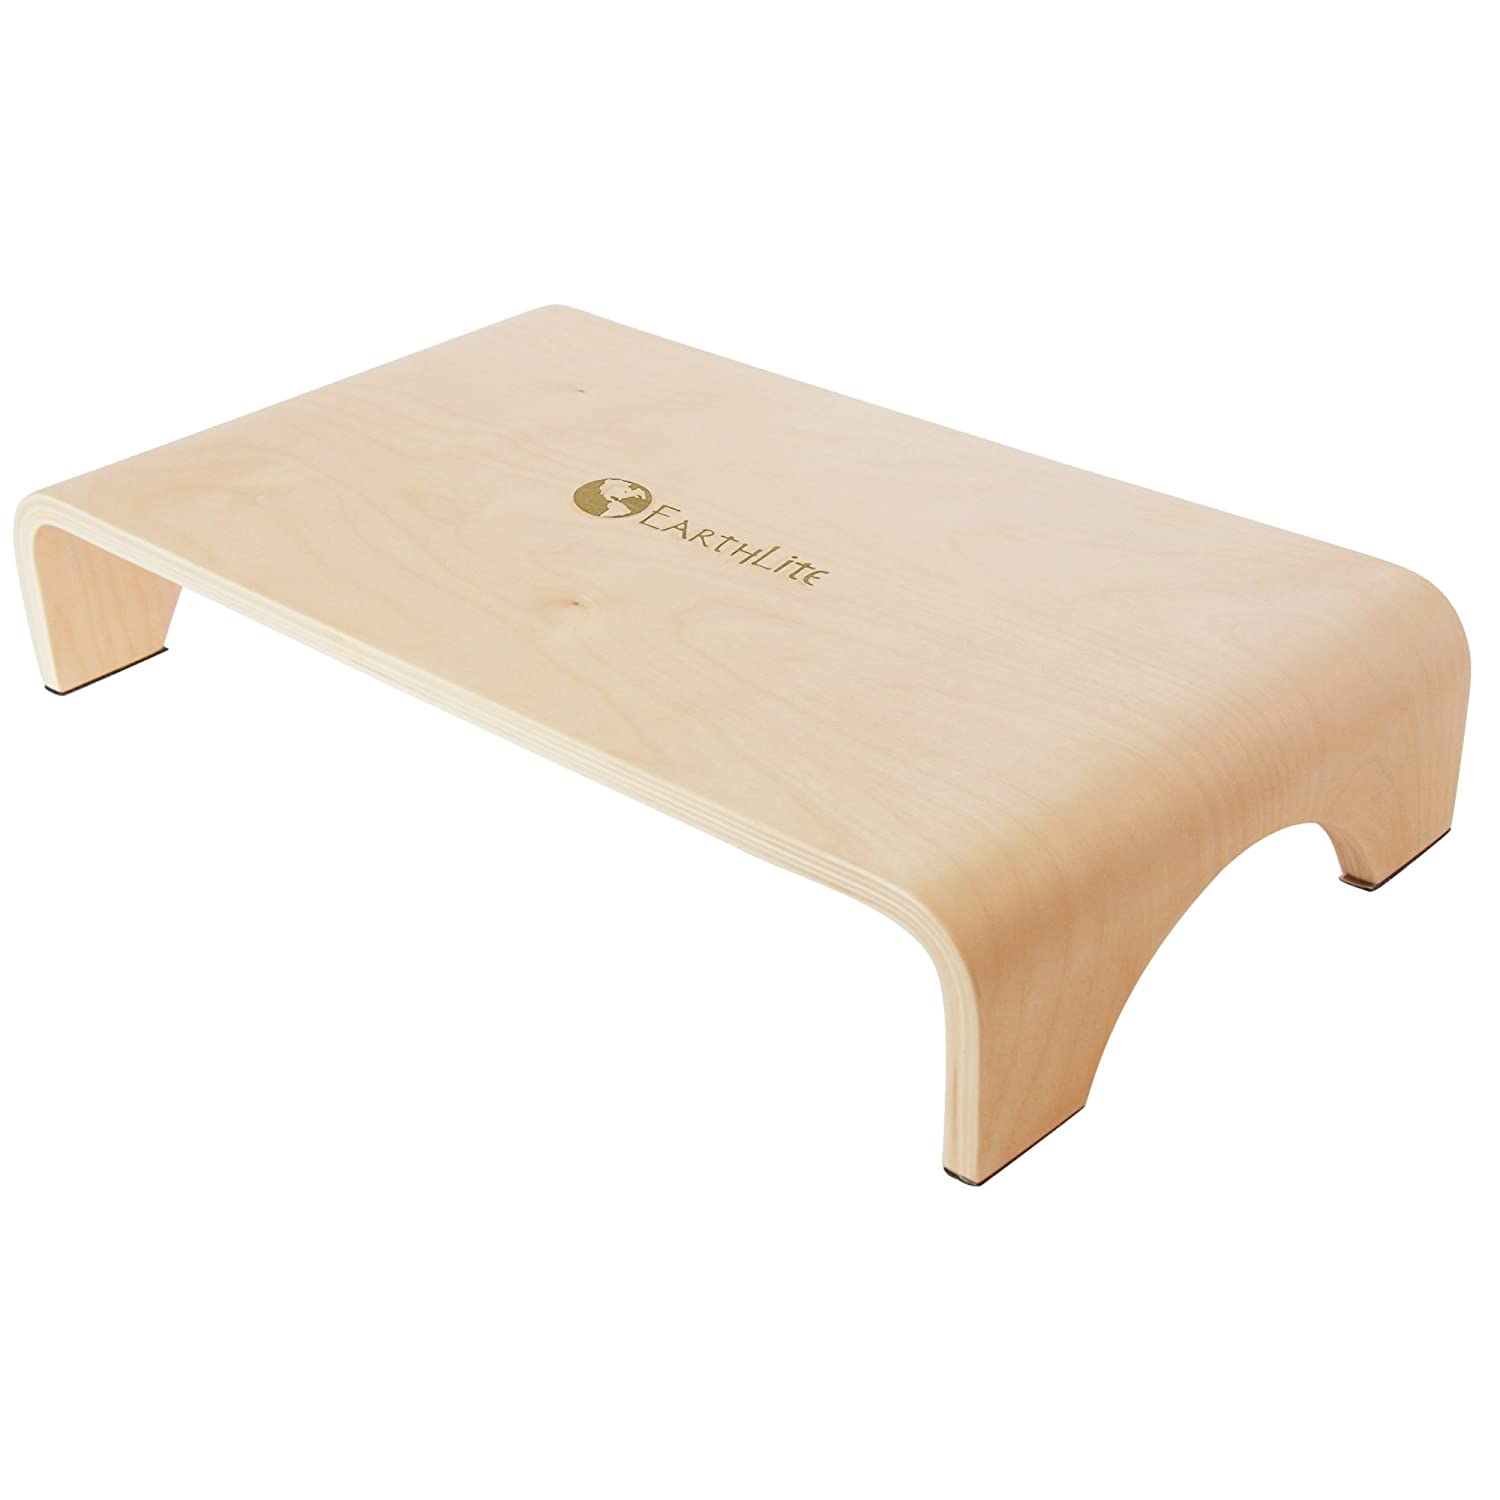 EARTHLITE Wooden Step Stool - 4'' High, Large Surface, Strong & Stable Bed Step, Foot Stool, Massage Step-Up Earthlite Massage Tables Inc. 40800